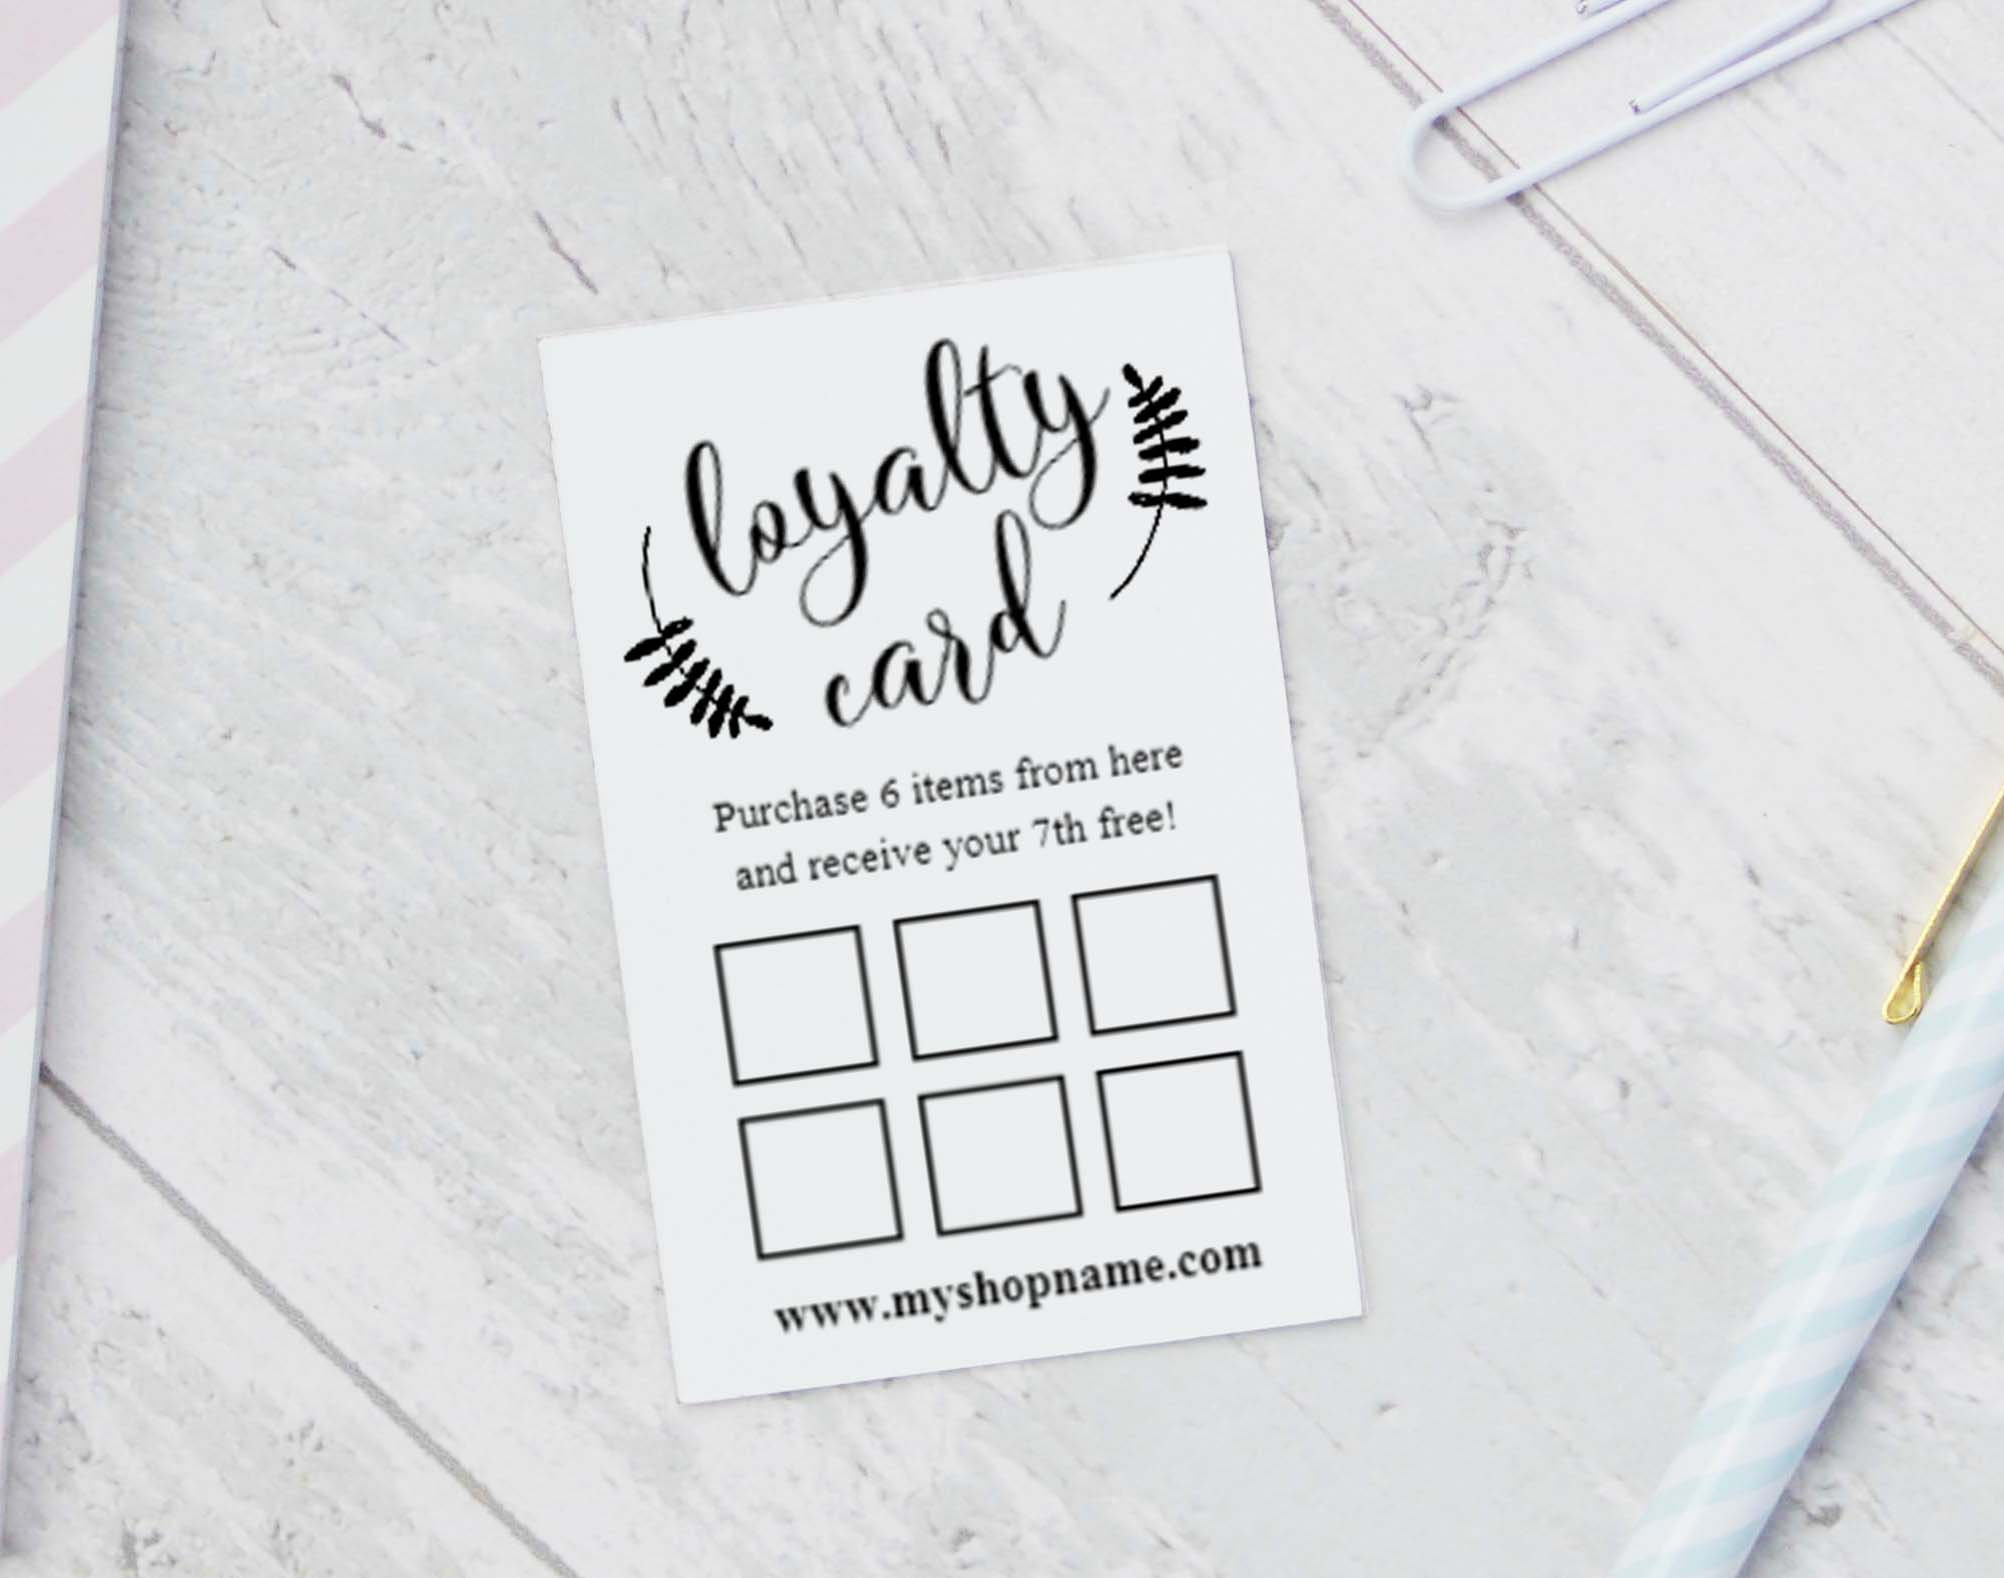 Loyalty Card Templates Instant Download Editable Reward | Etsy - Free Printable Loyalty Card Template